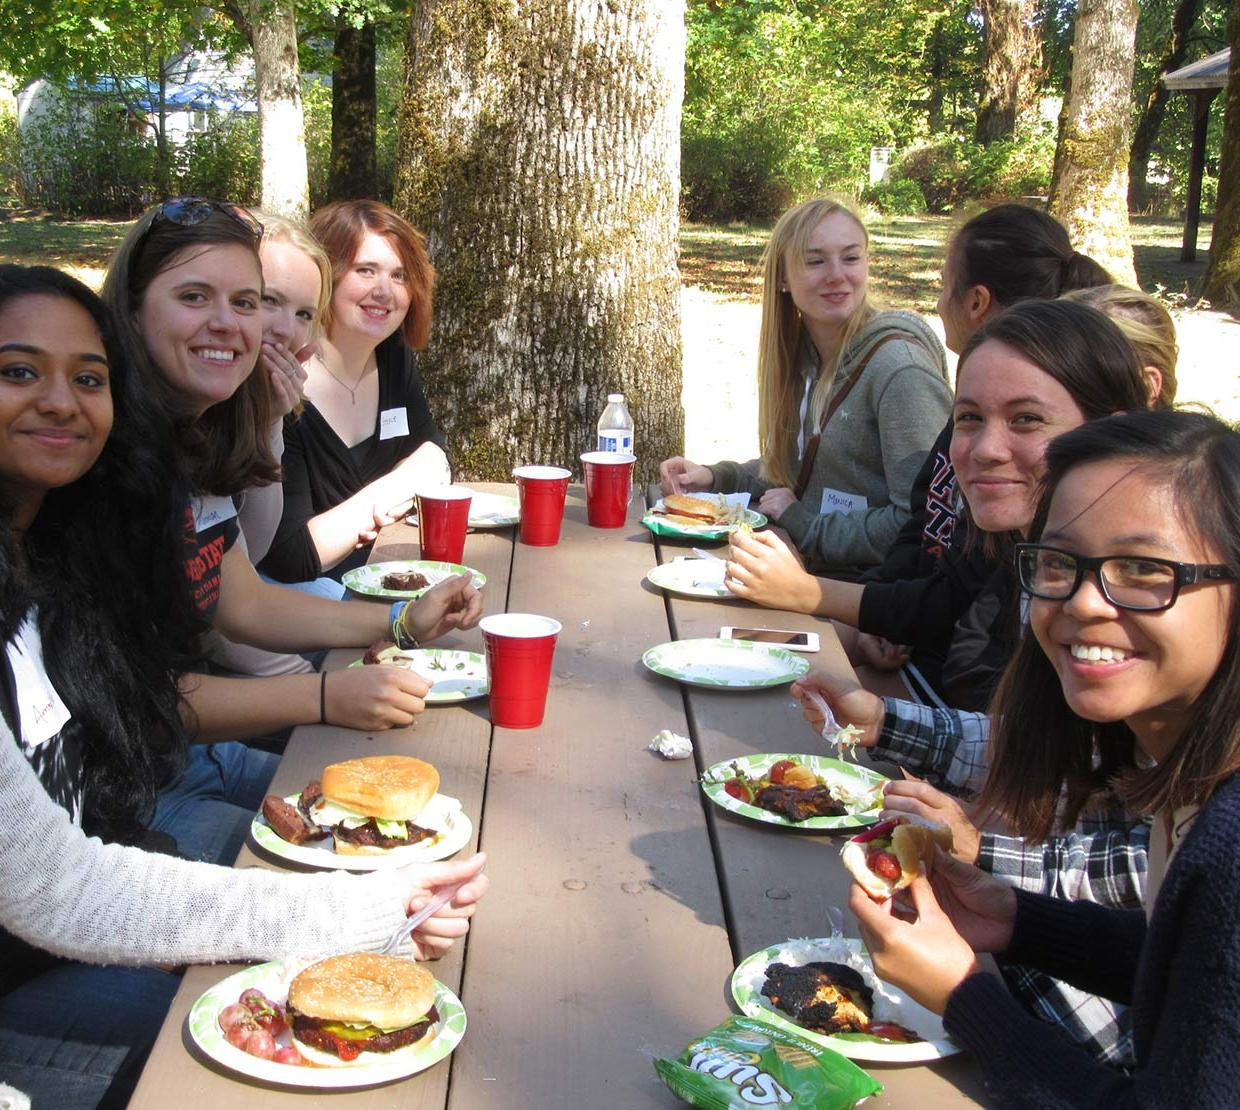 students sitting around picnic table eating lunch